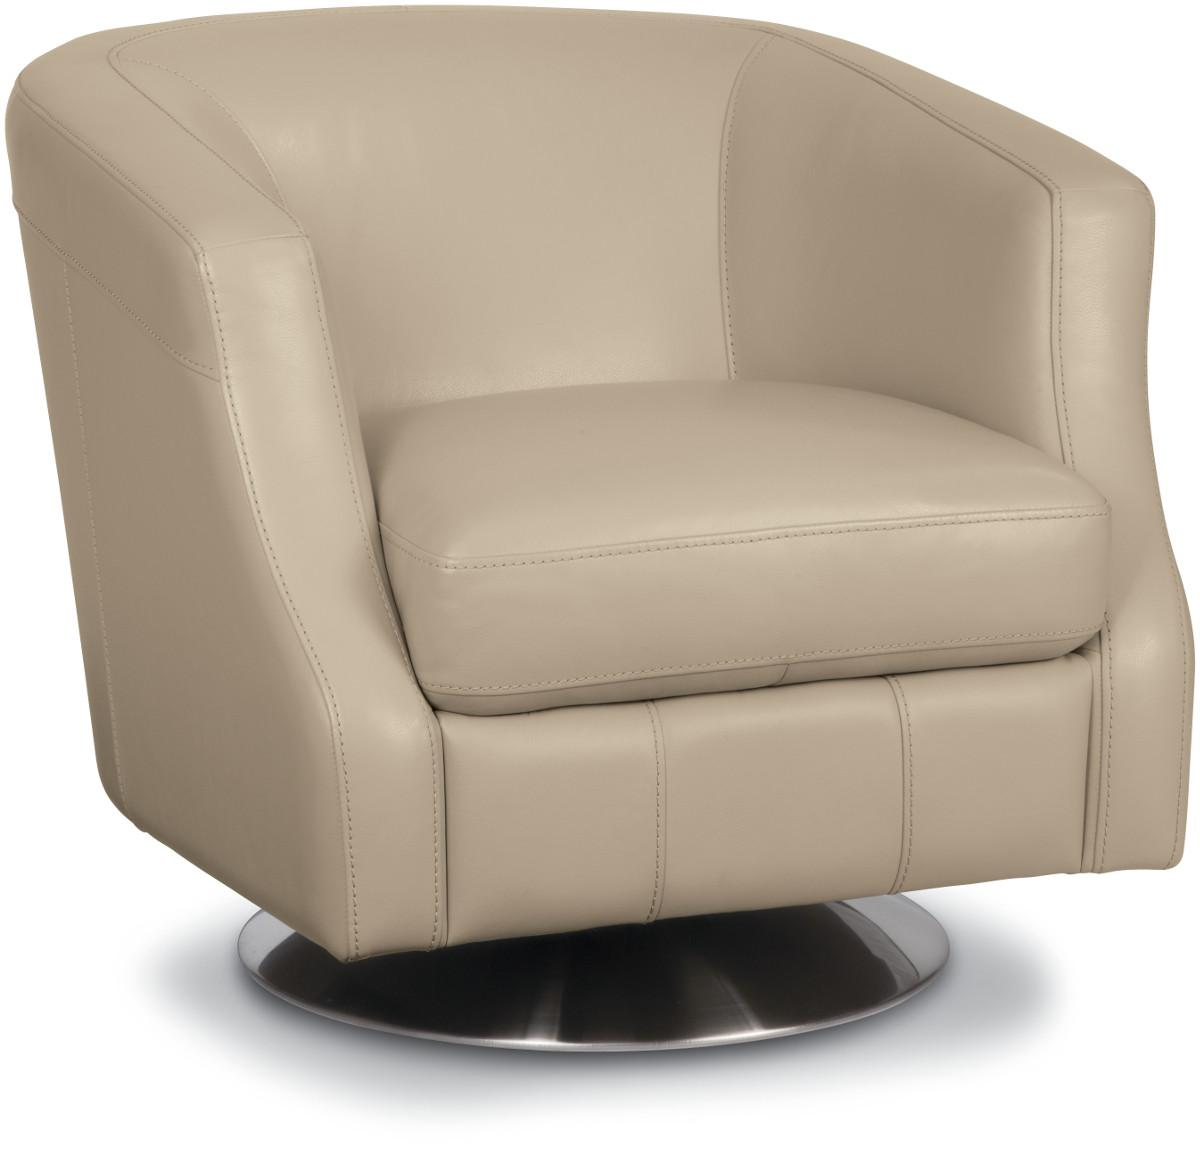 Image of: Minimalist Swivel Accent Chair